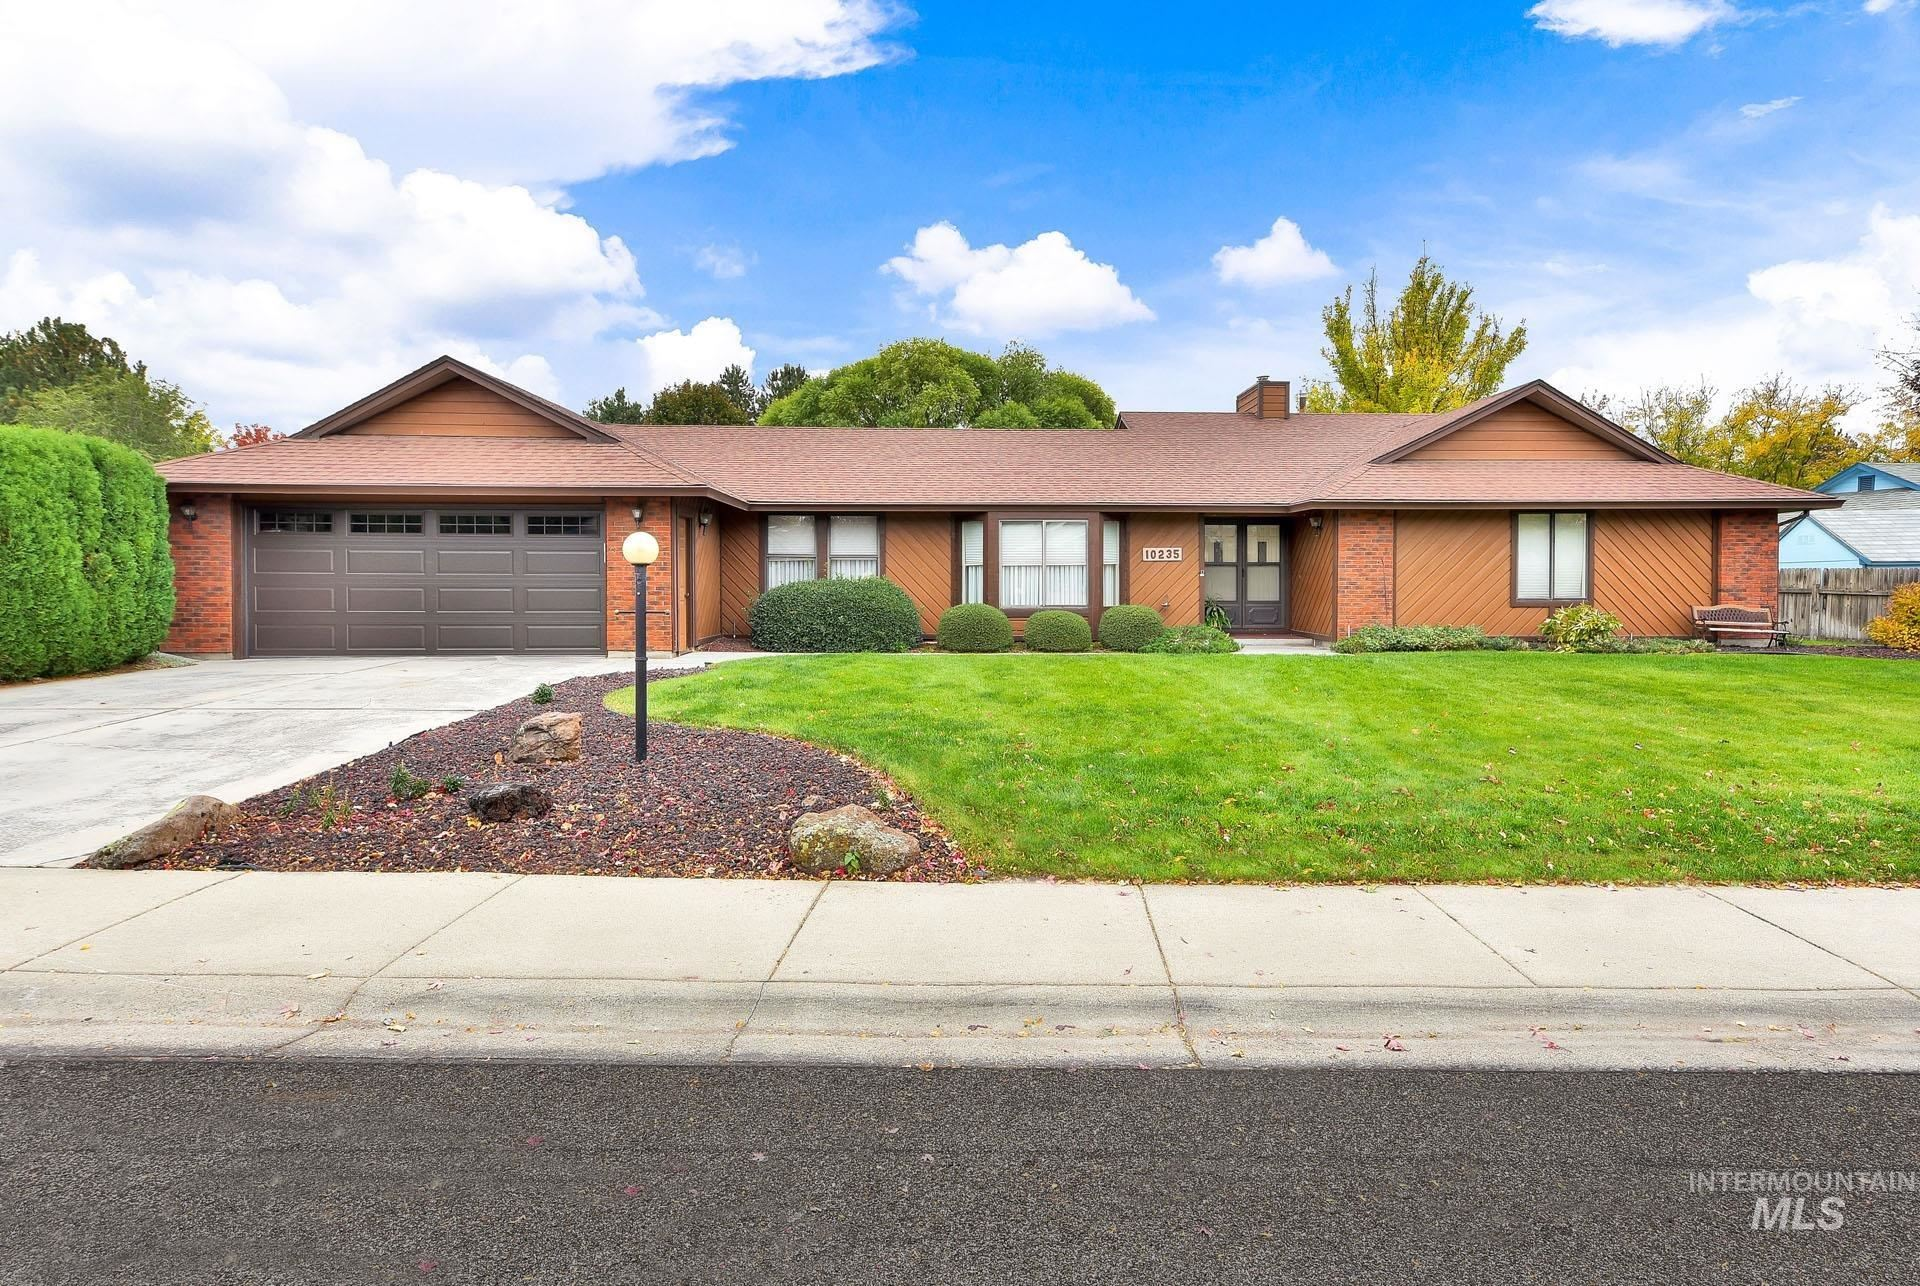 10235 W Southerland Dr, Boise, ID 83709 - MLS#: 98822452